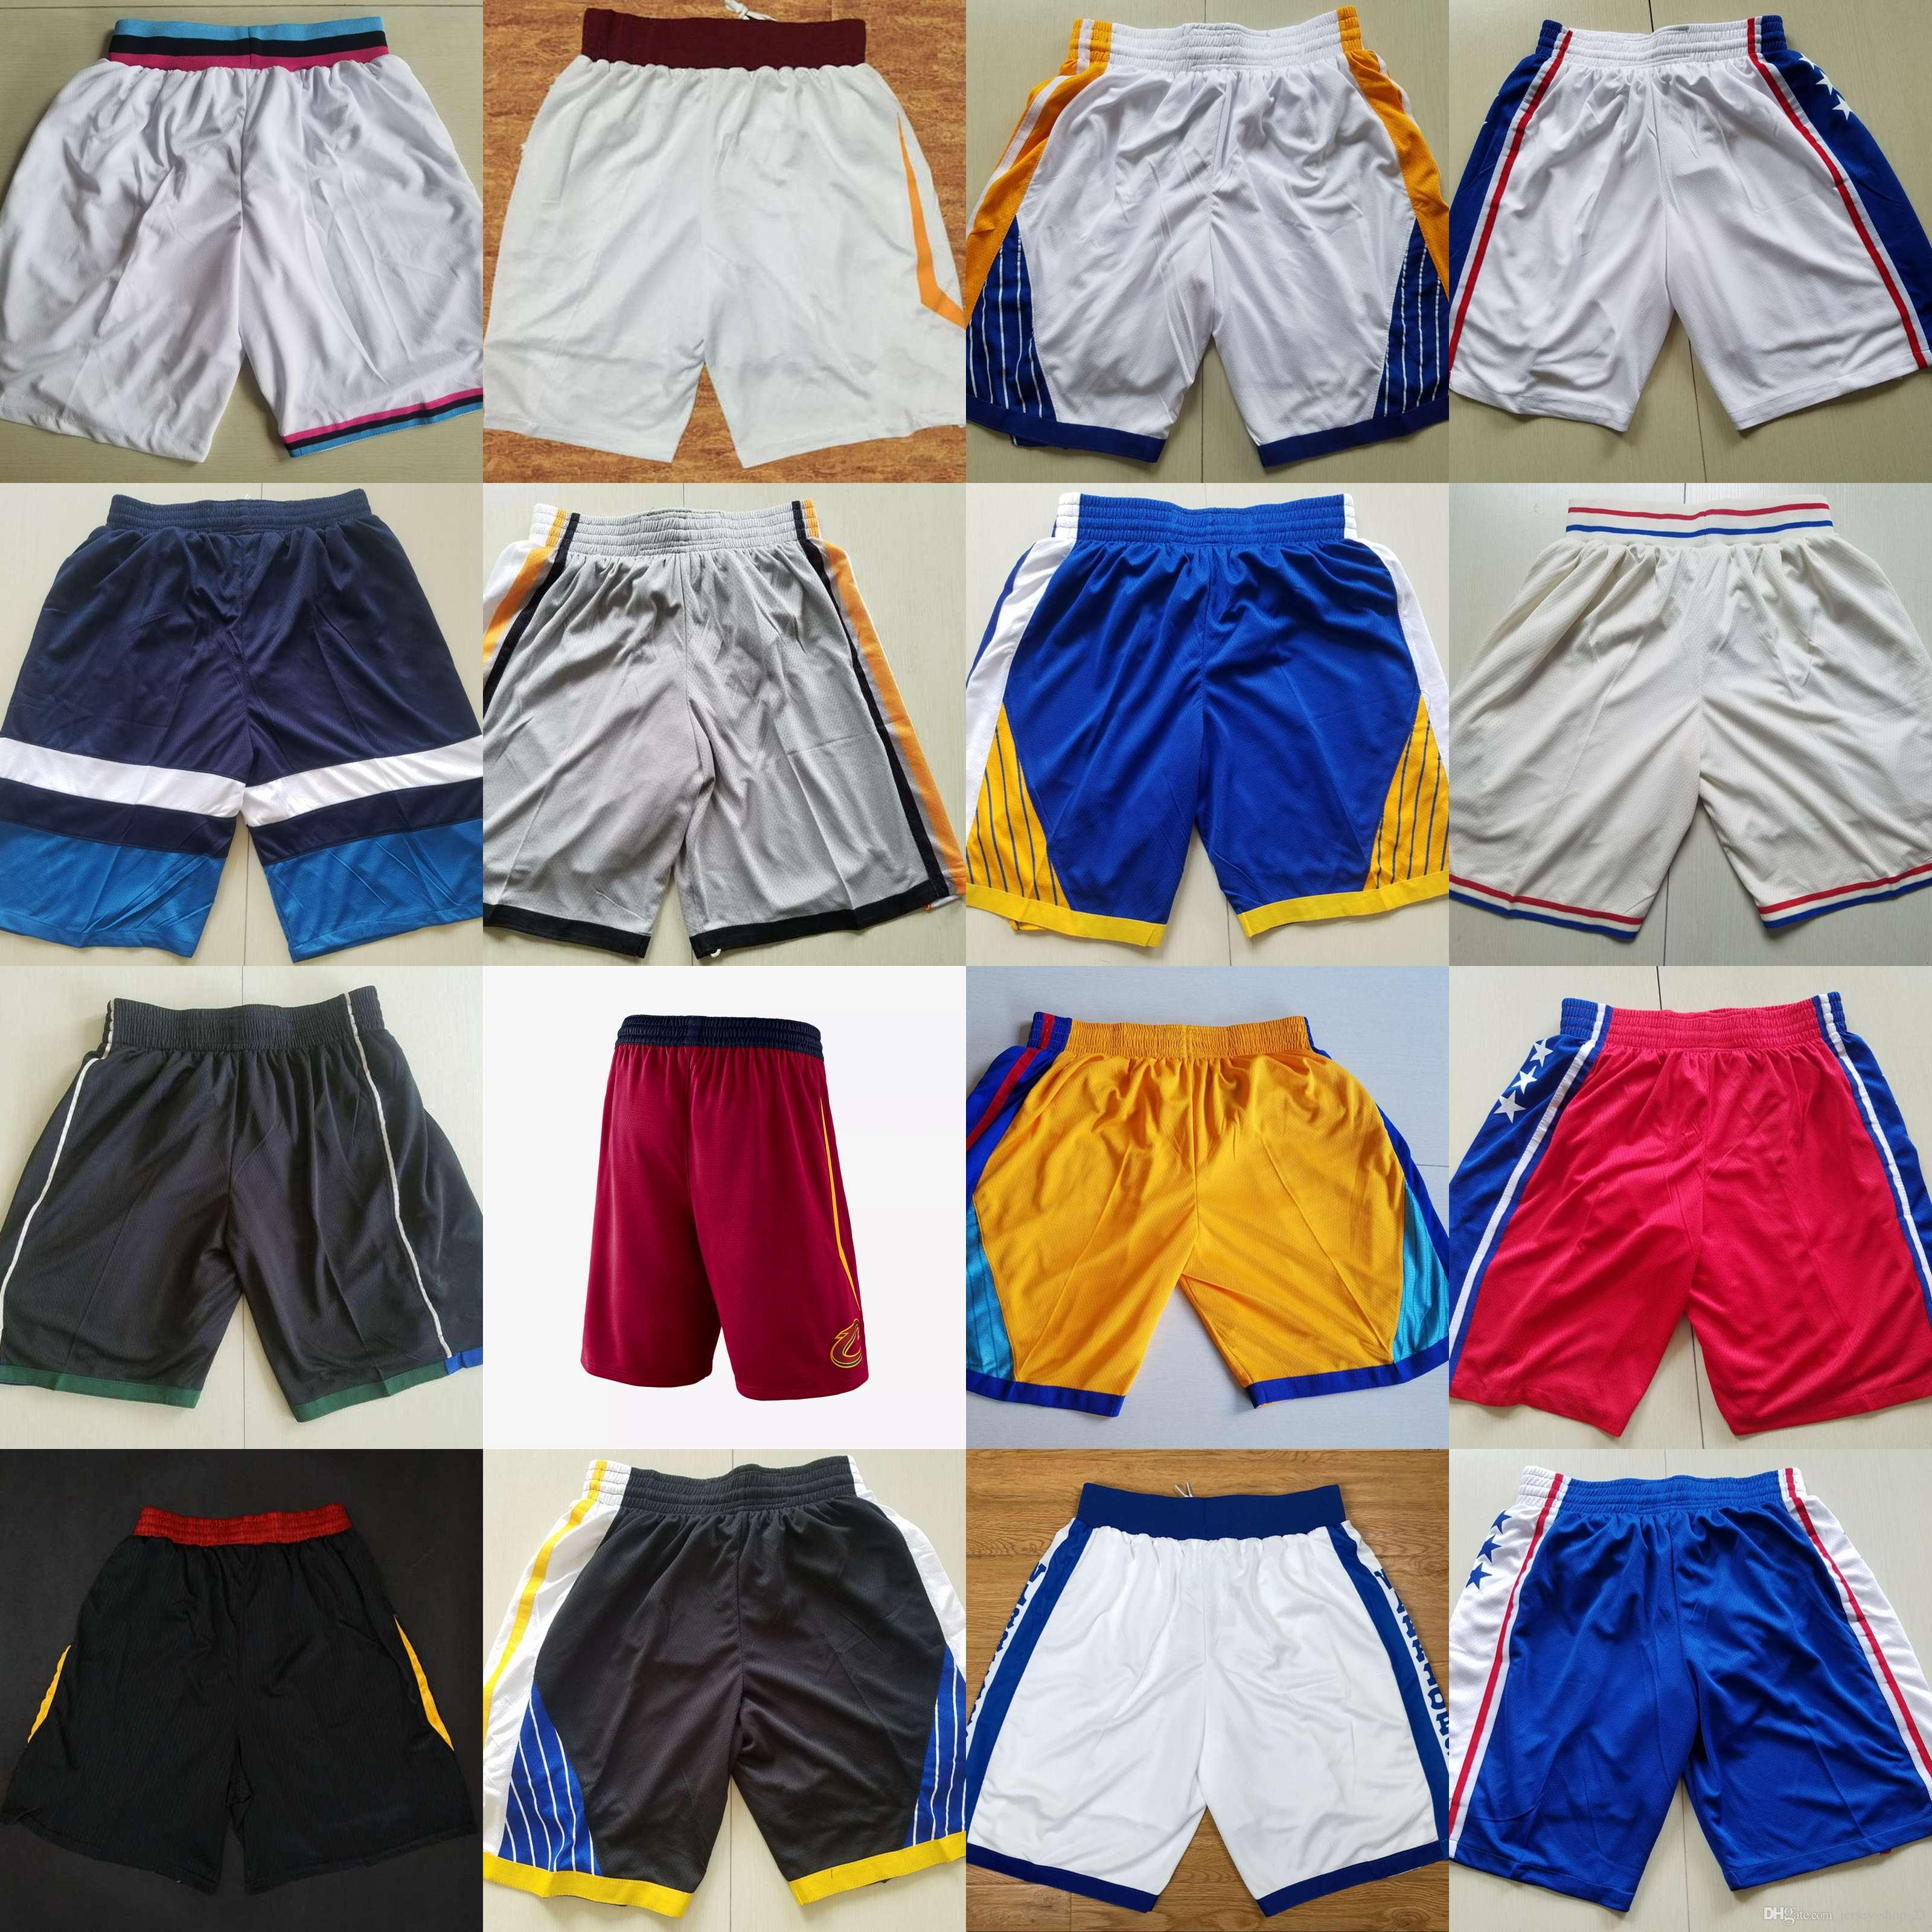 Men S Shorts Basketball Shorts New Breathable Sweatpants Teams Classic  Sportswear Wear Embroidered Logos Cheap Sports Shirts UK 2019 From Jersey  Shop 23 48b8b074c